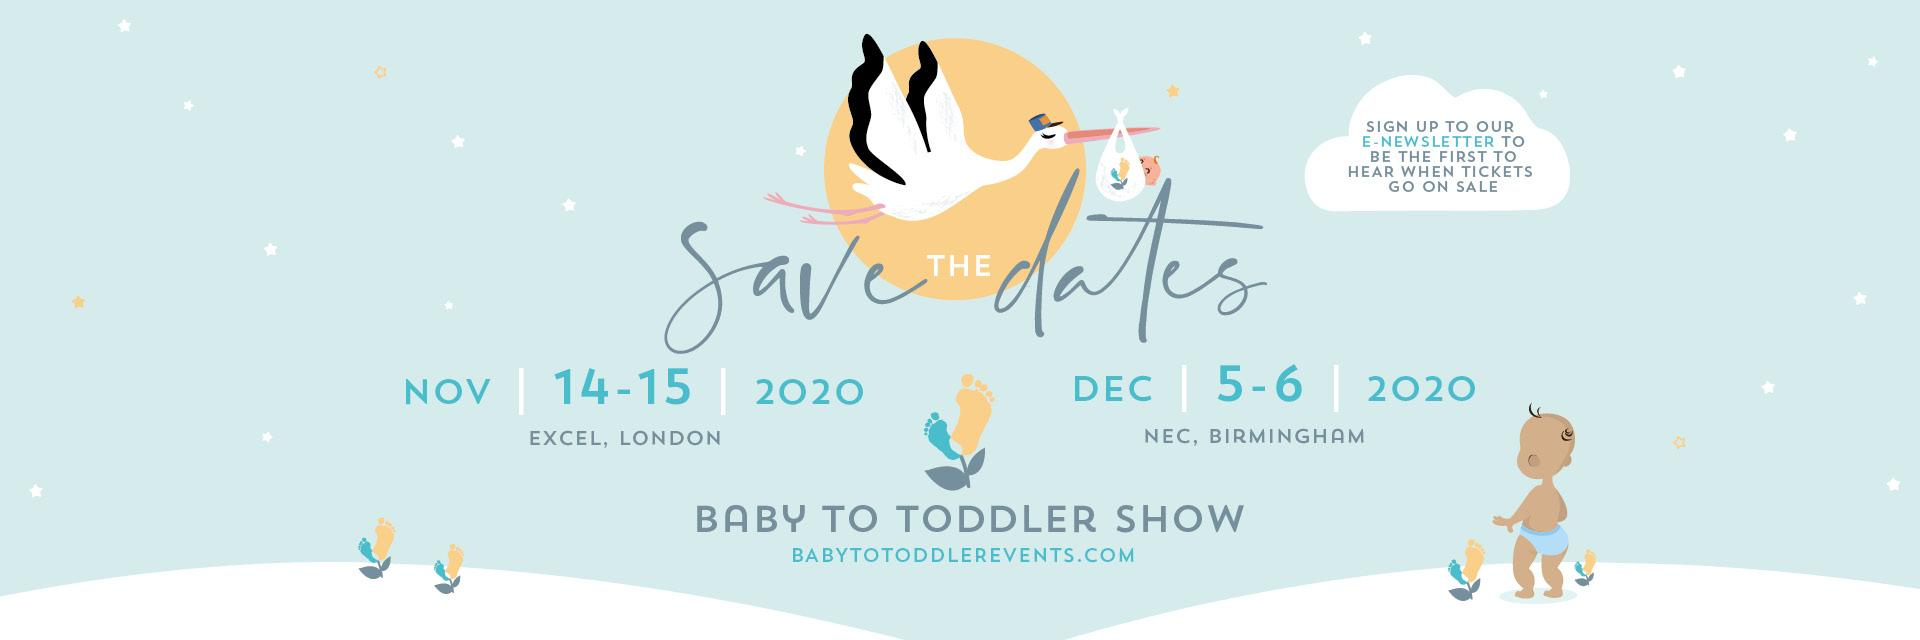 From the organisers of The Baby Show, Baby to Toddler event is created for parents of babies, toddlers and parents-to-be.